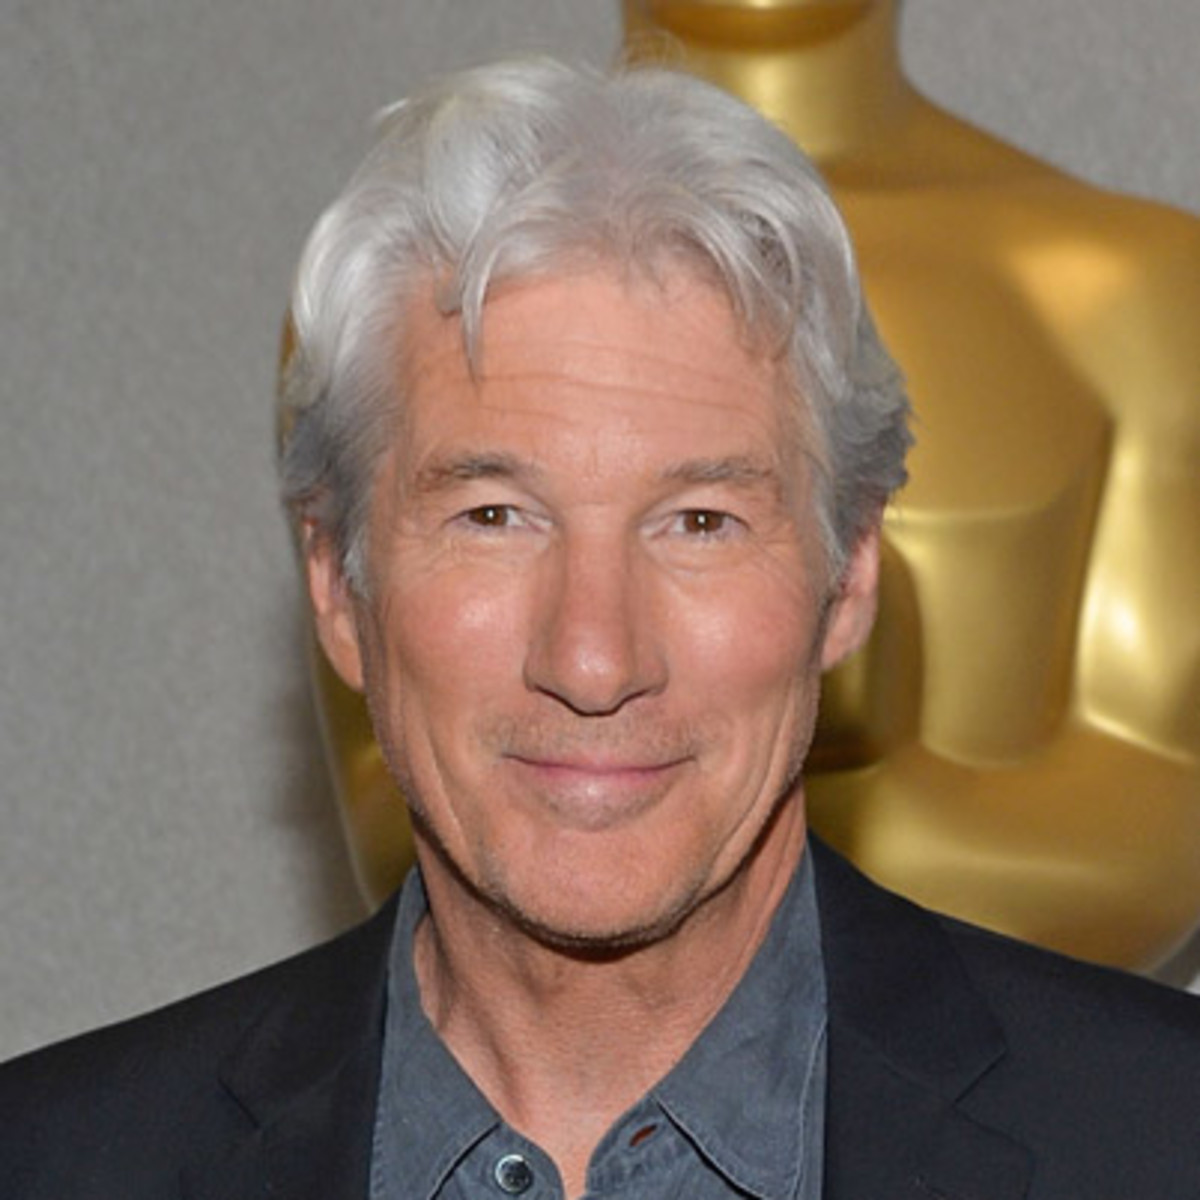 Richard Gere - Movies, Wife & Age - BiographyRichard Gere 2013 Wife